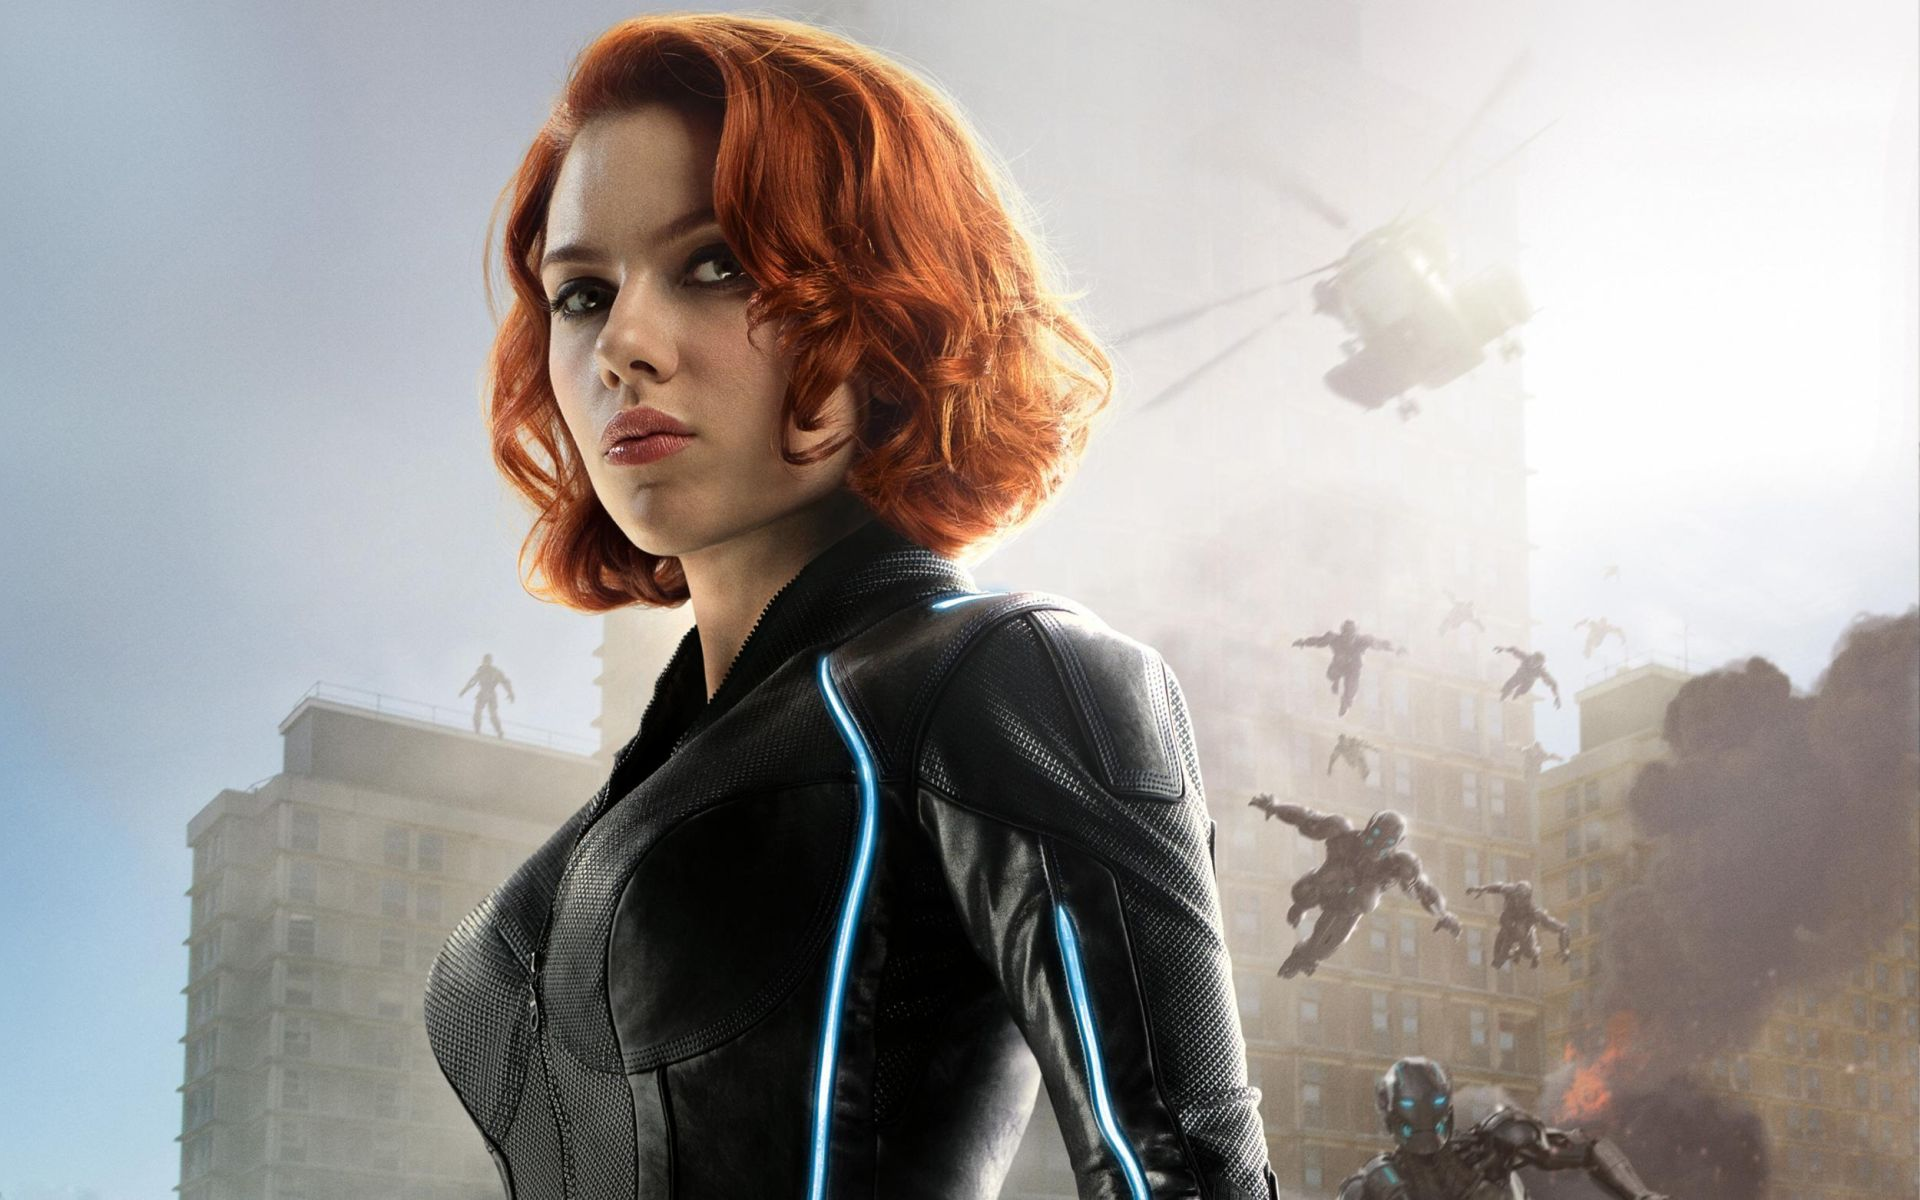 Scarlett Johansson has 'unfinished business' in new Black Widow footage